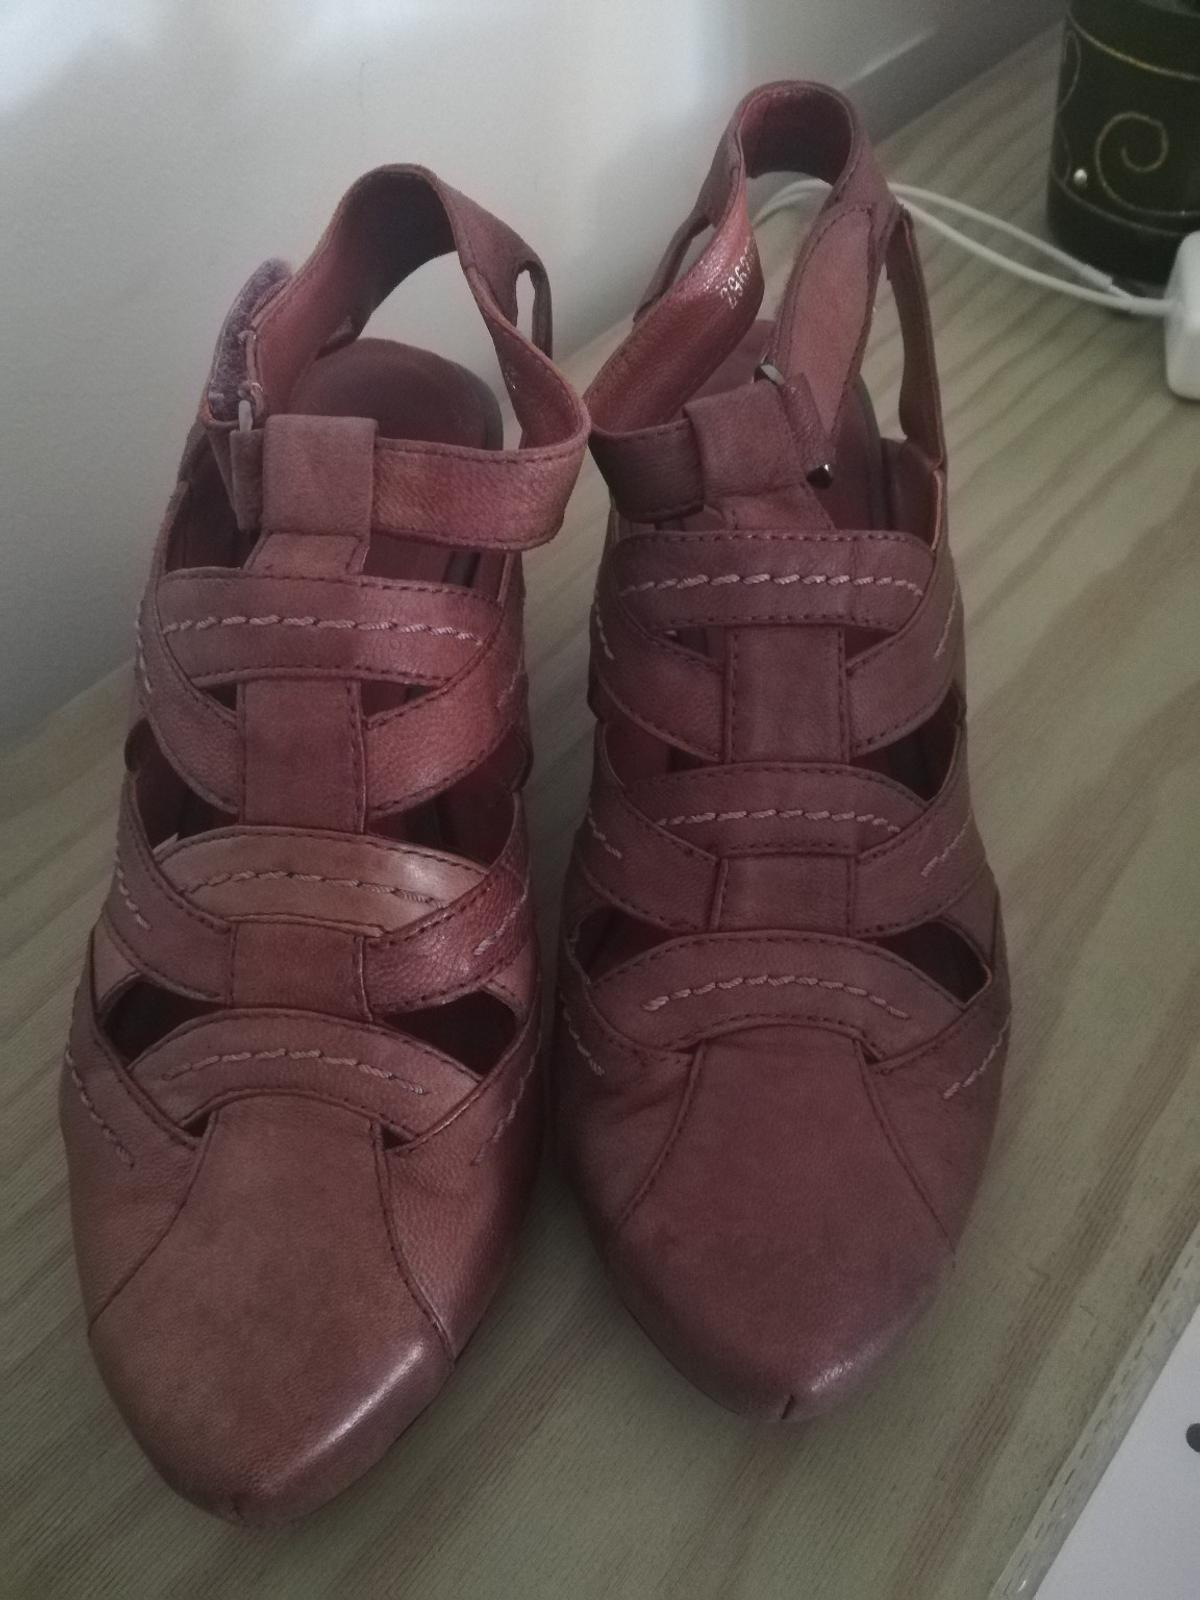 €13 TAMARIS LEDER Munich 00 for 81549 sale for SCHUHE in 2WHI9ED